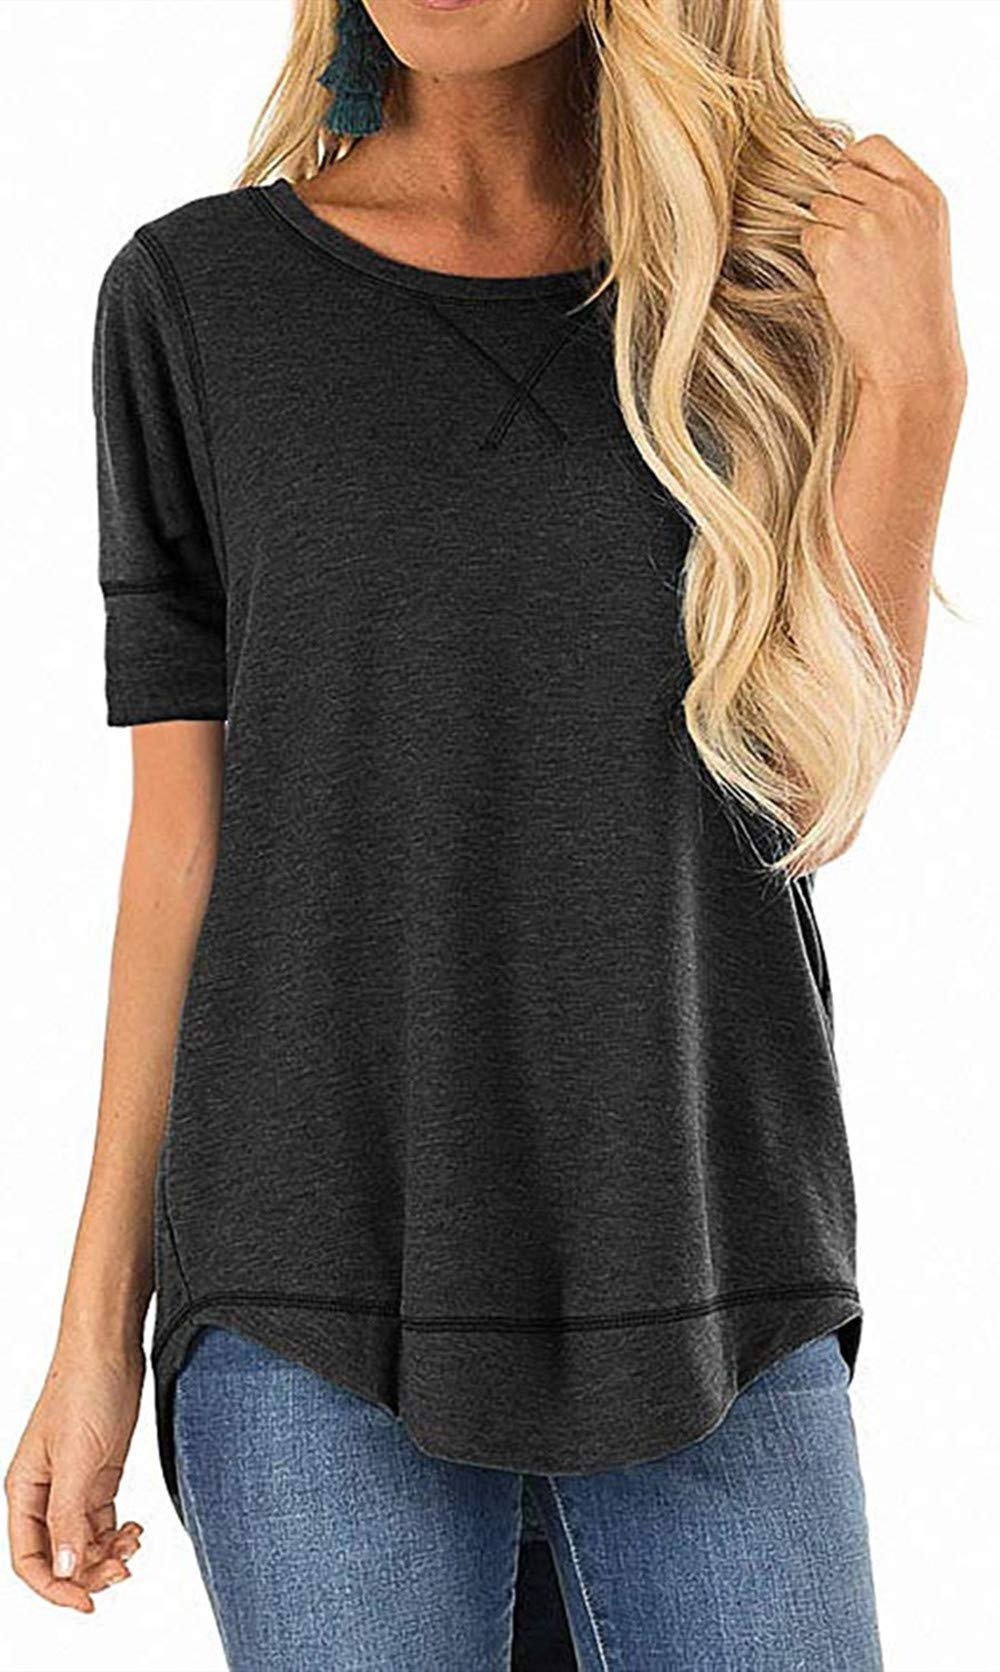 MixShe Summer Tops for Women Short Sleeve Casual T Shirts Loose Tunic Top